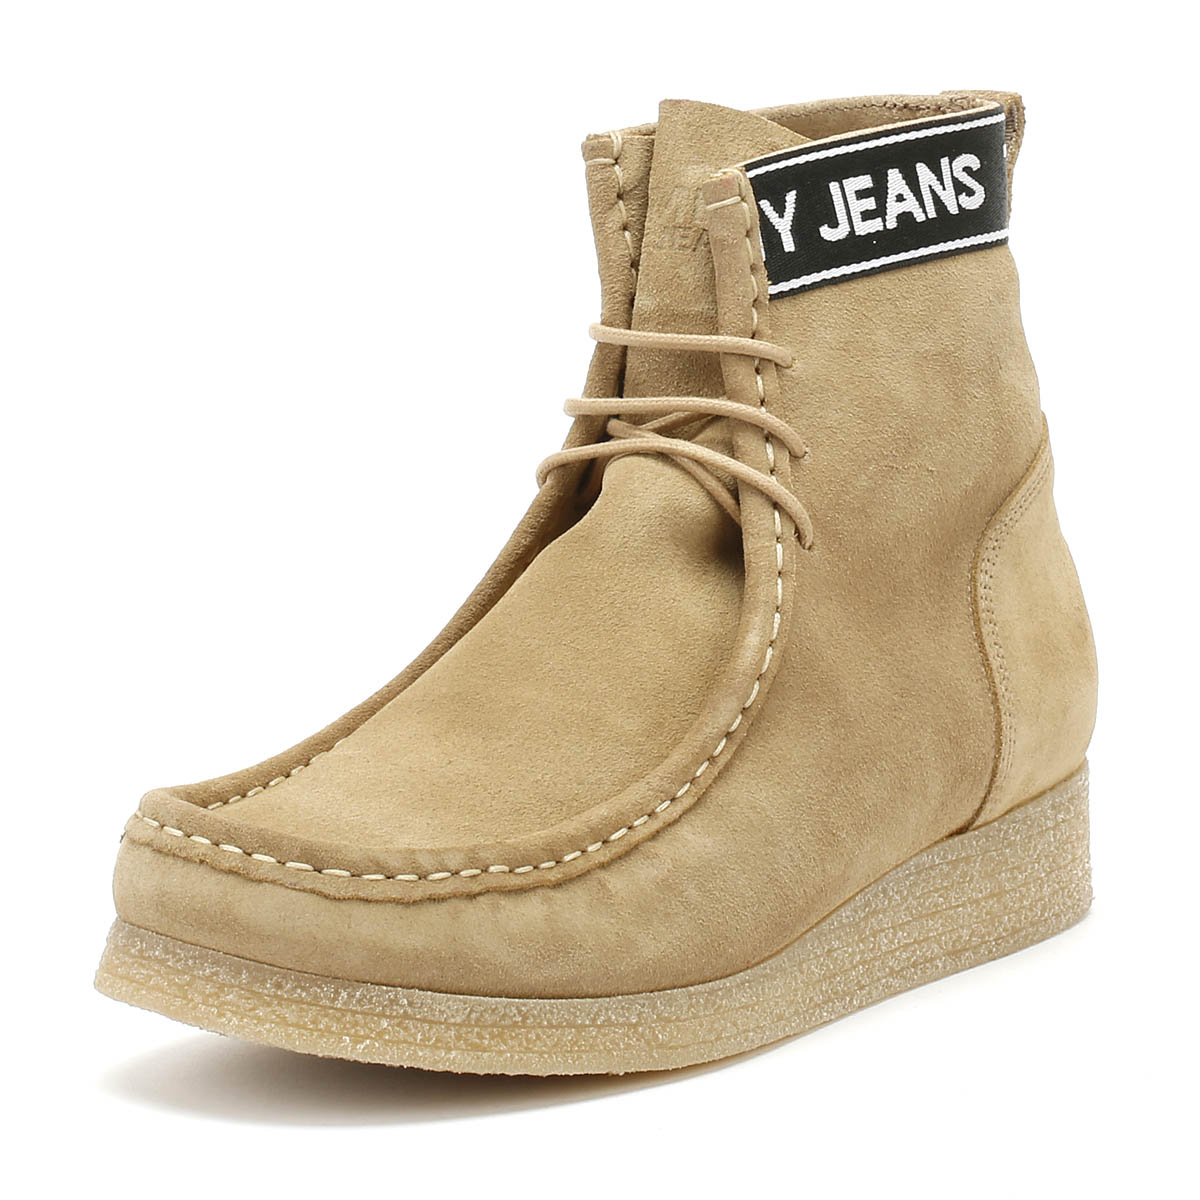 6eeff79e8 Details about Tommy Hilfiger Jeans Crepe Outsole Wallaby Mens Sand Beige  Boots